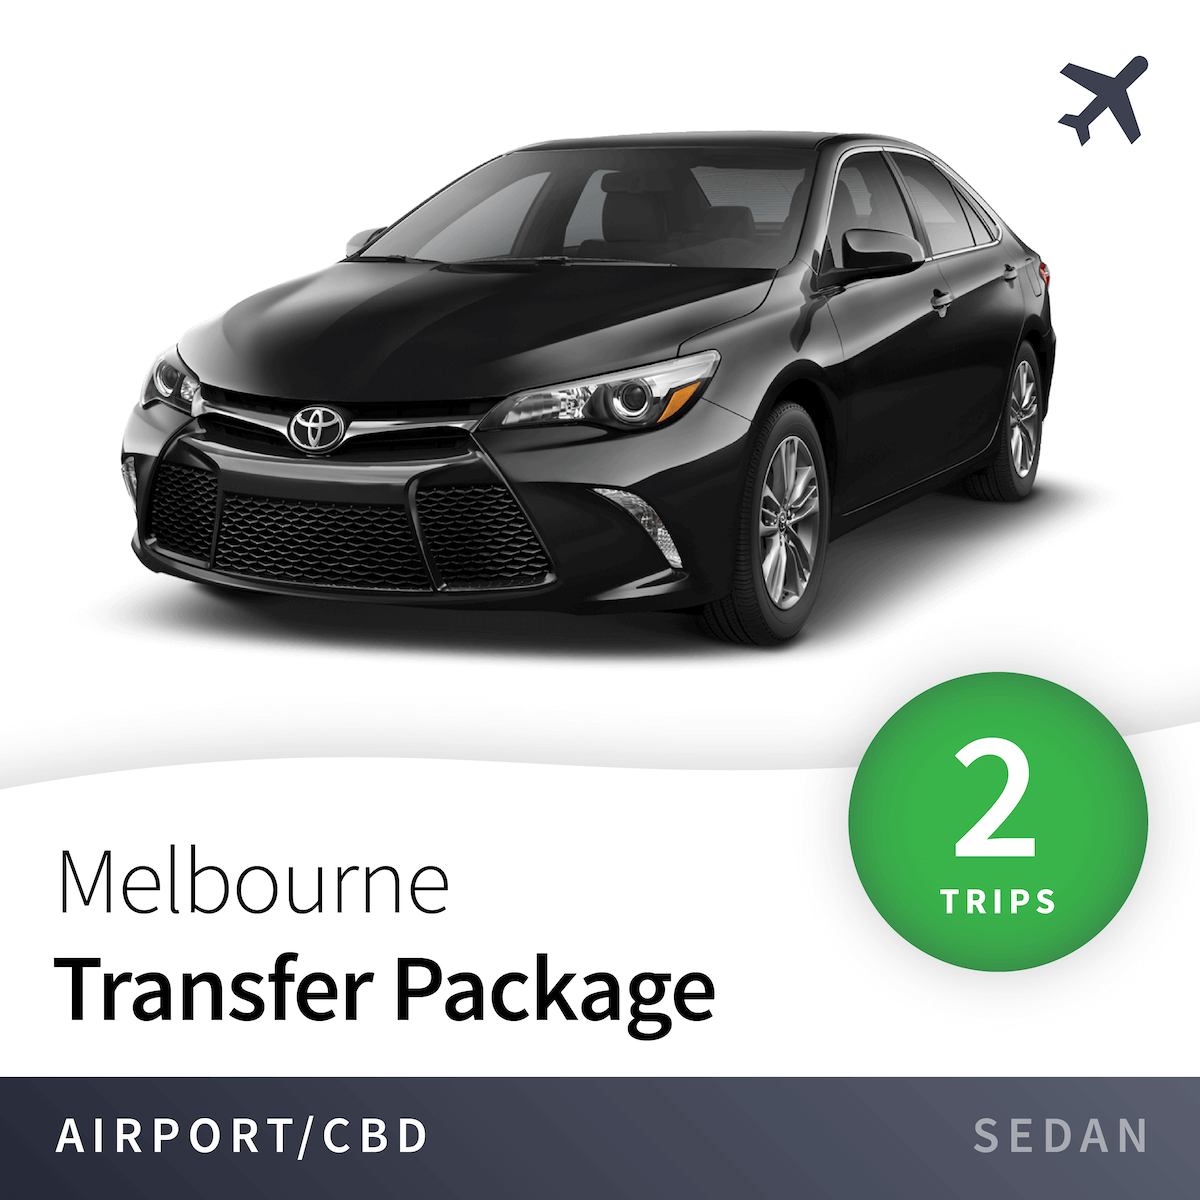 Melbourne Airport Transfer Package - Sedan (2 Trips) 6